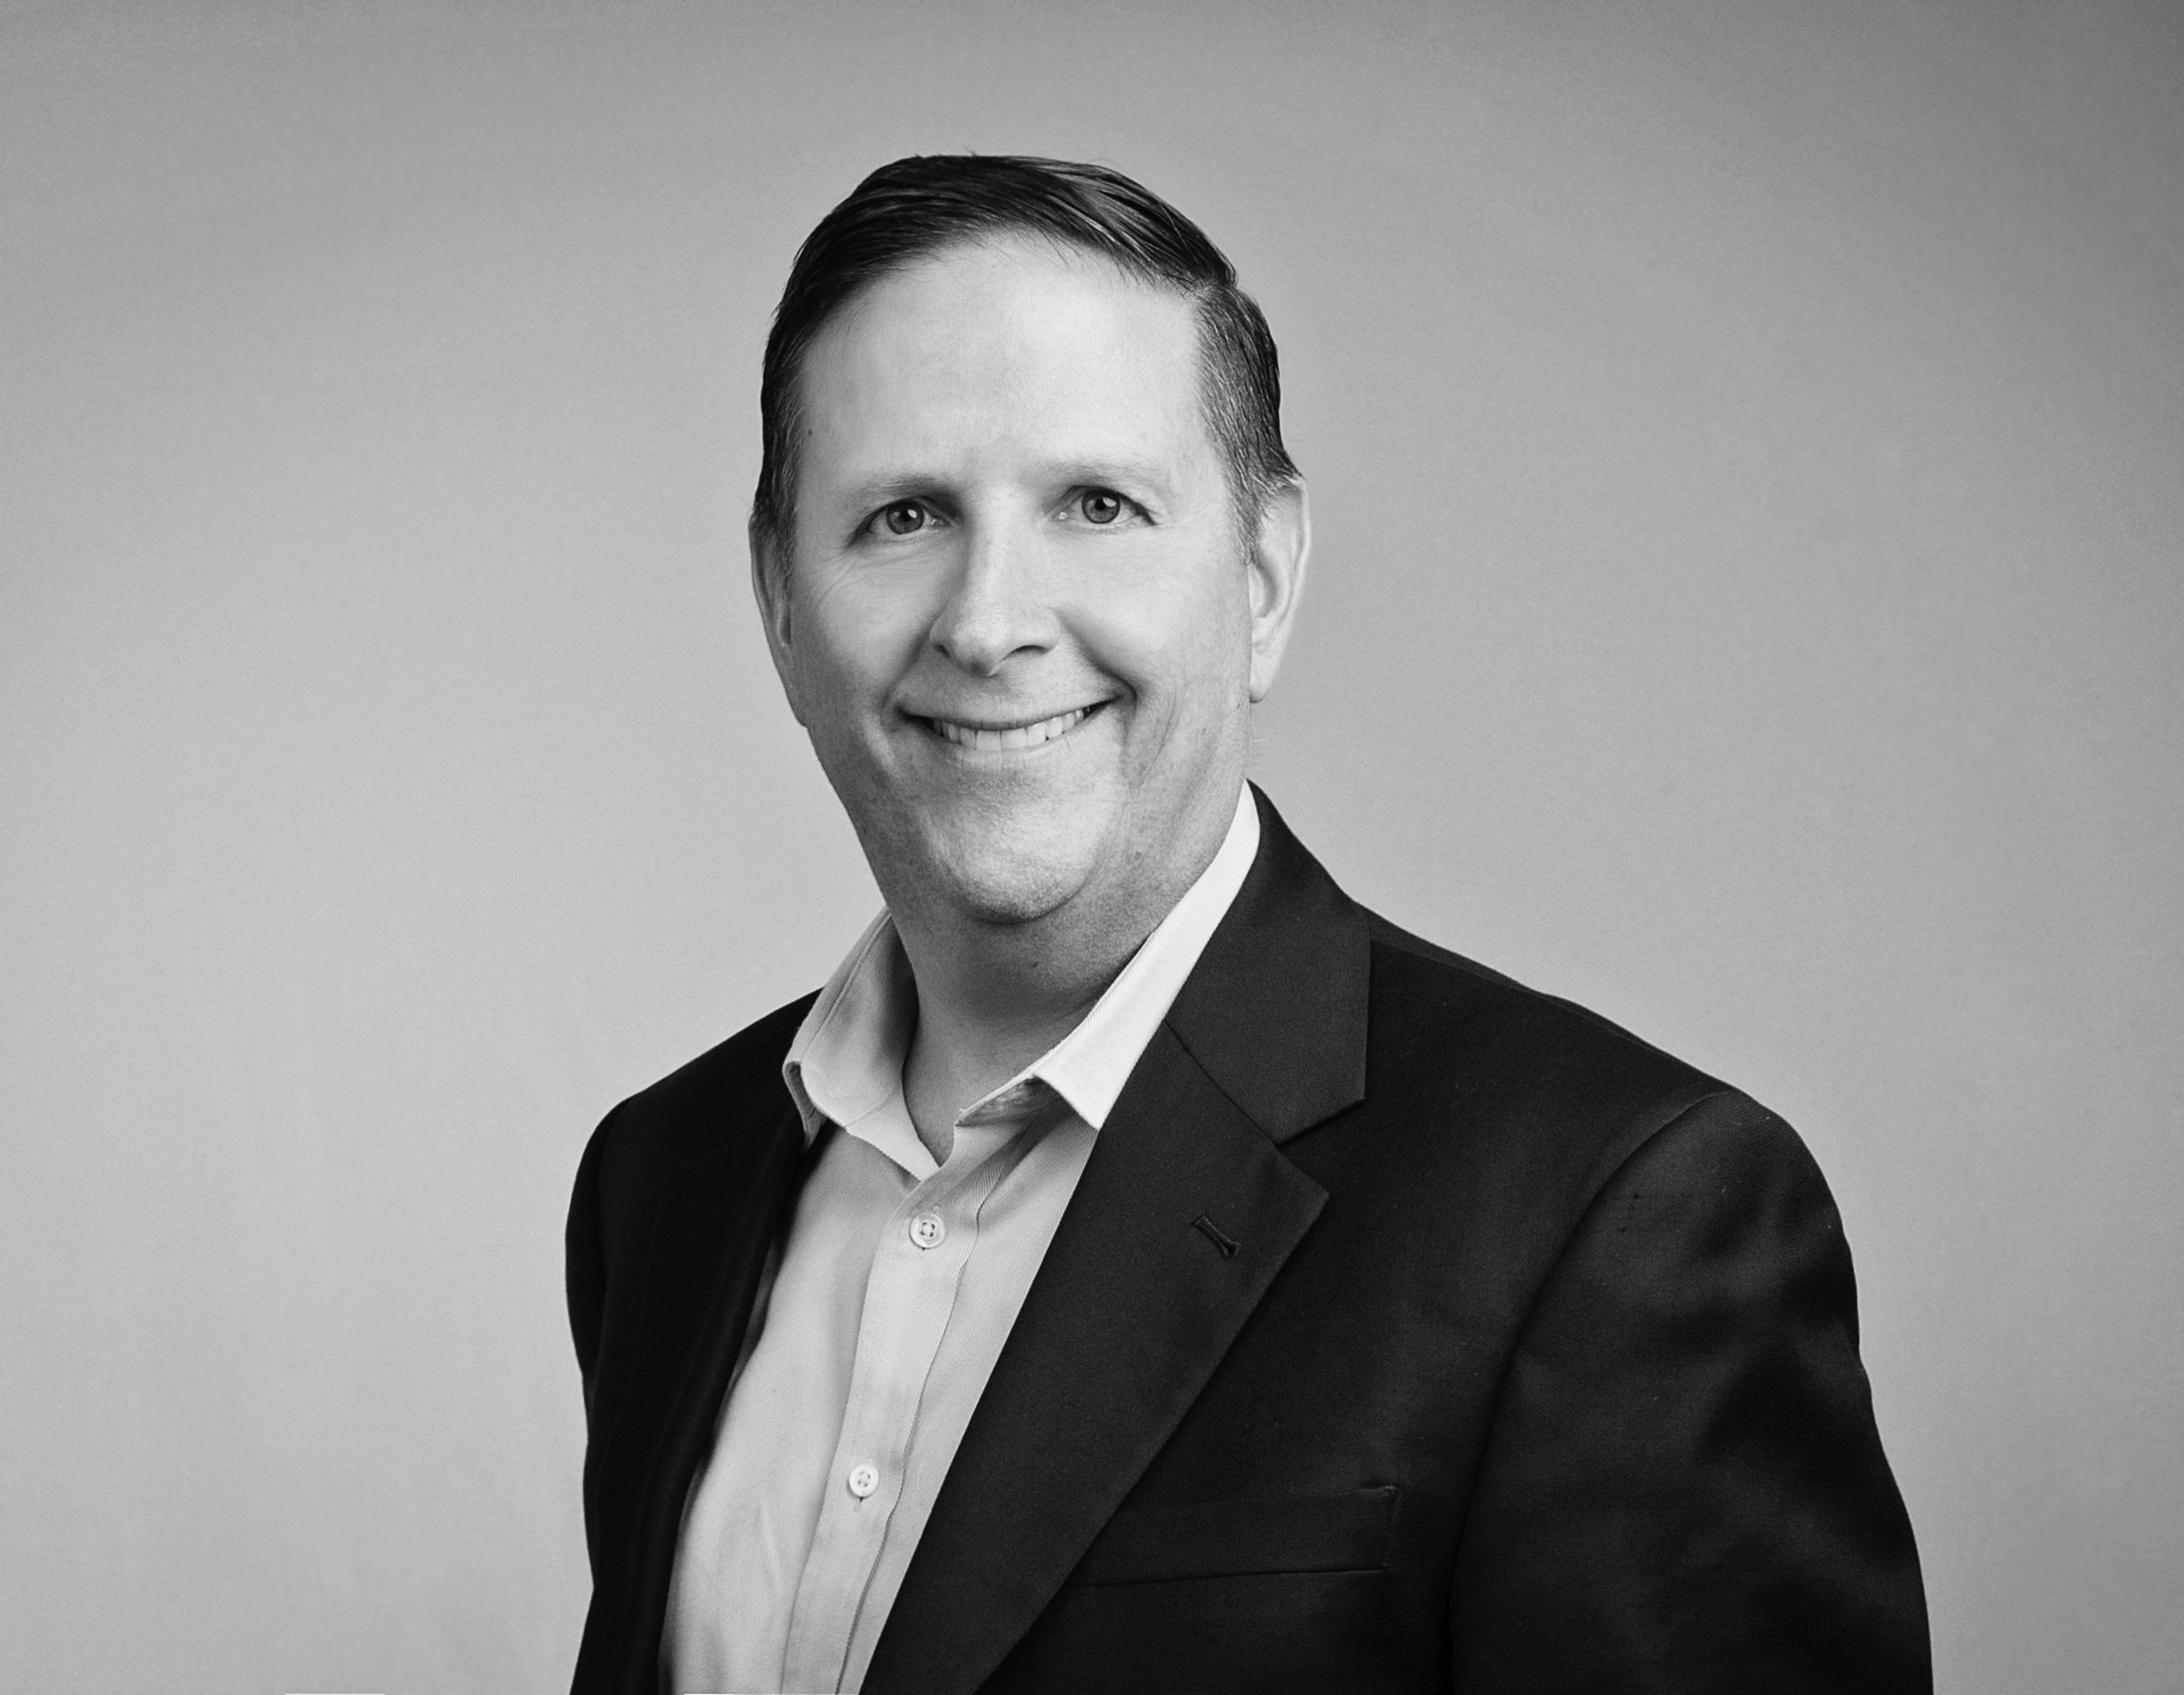 Mike Gianoni, Chief Executive Officer of Blackbaud and SnapCap advisor